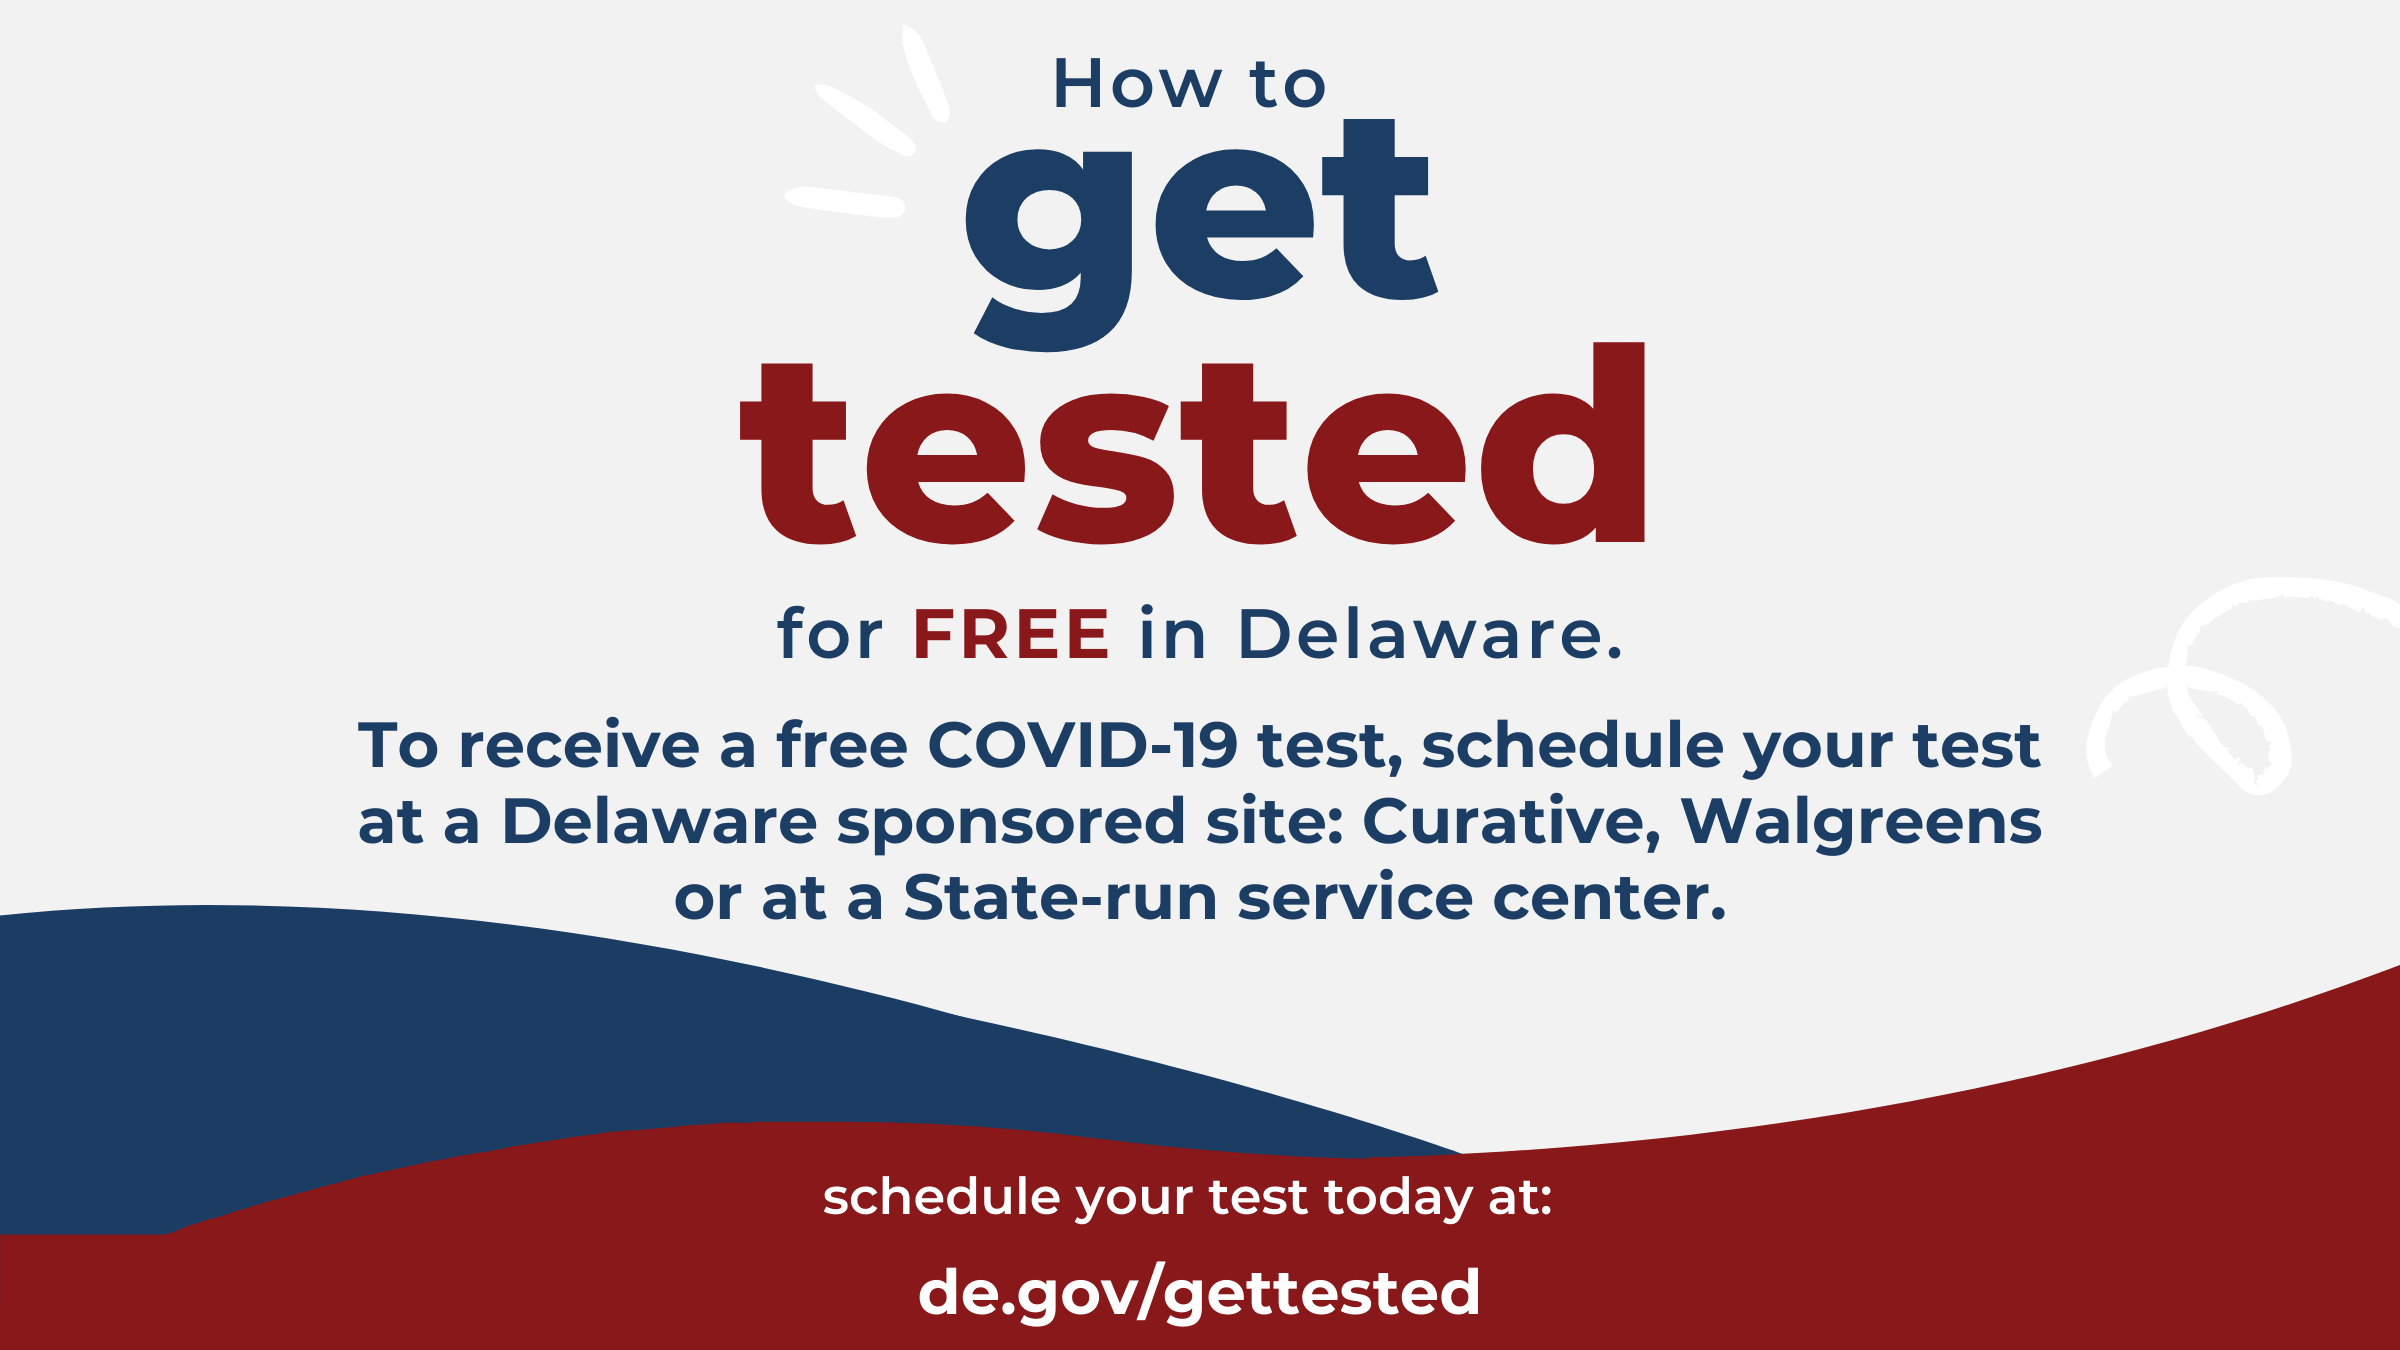 How to get tested for free in Delaware